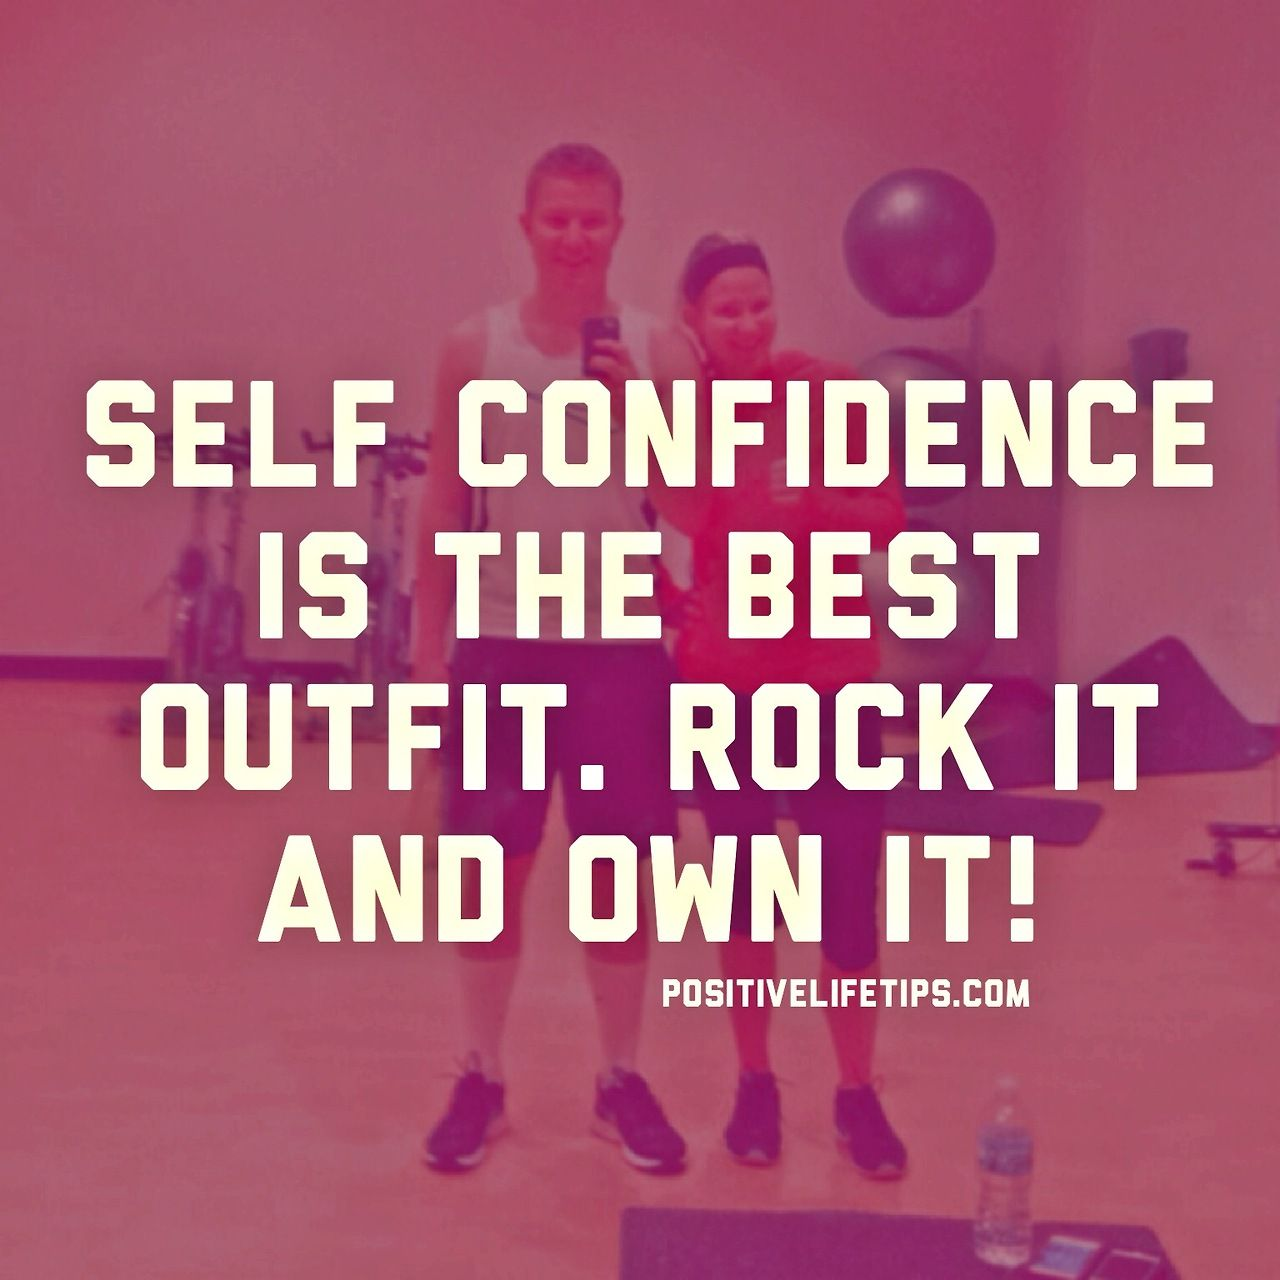 Wisdom Quotes Self Confidence Is The Best Outfitrock It And Own It  Positive